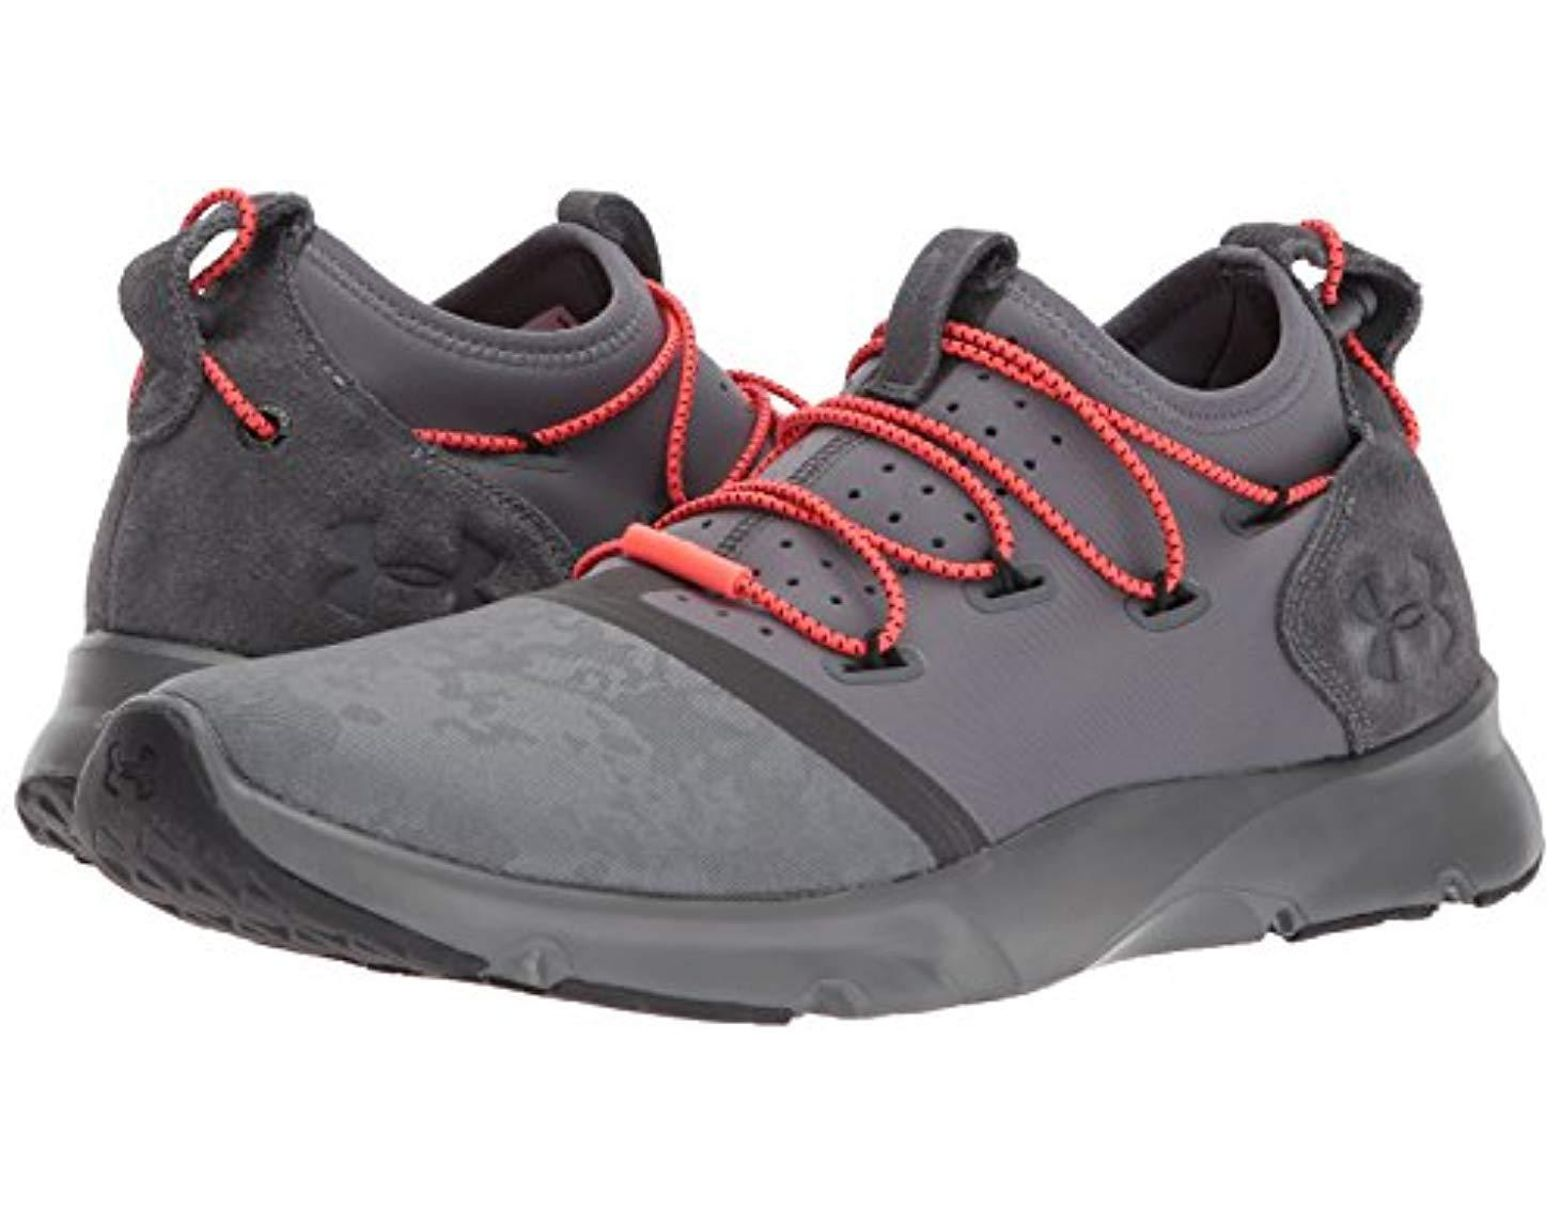 af0ada1d6e861 ... under armour drift 2 x camo rflt running shoe in gray for men save ...